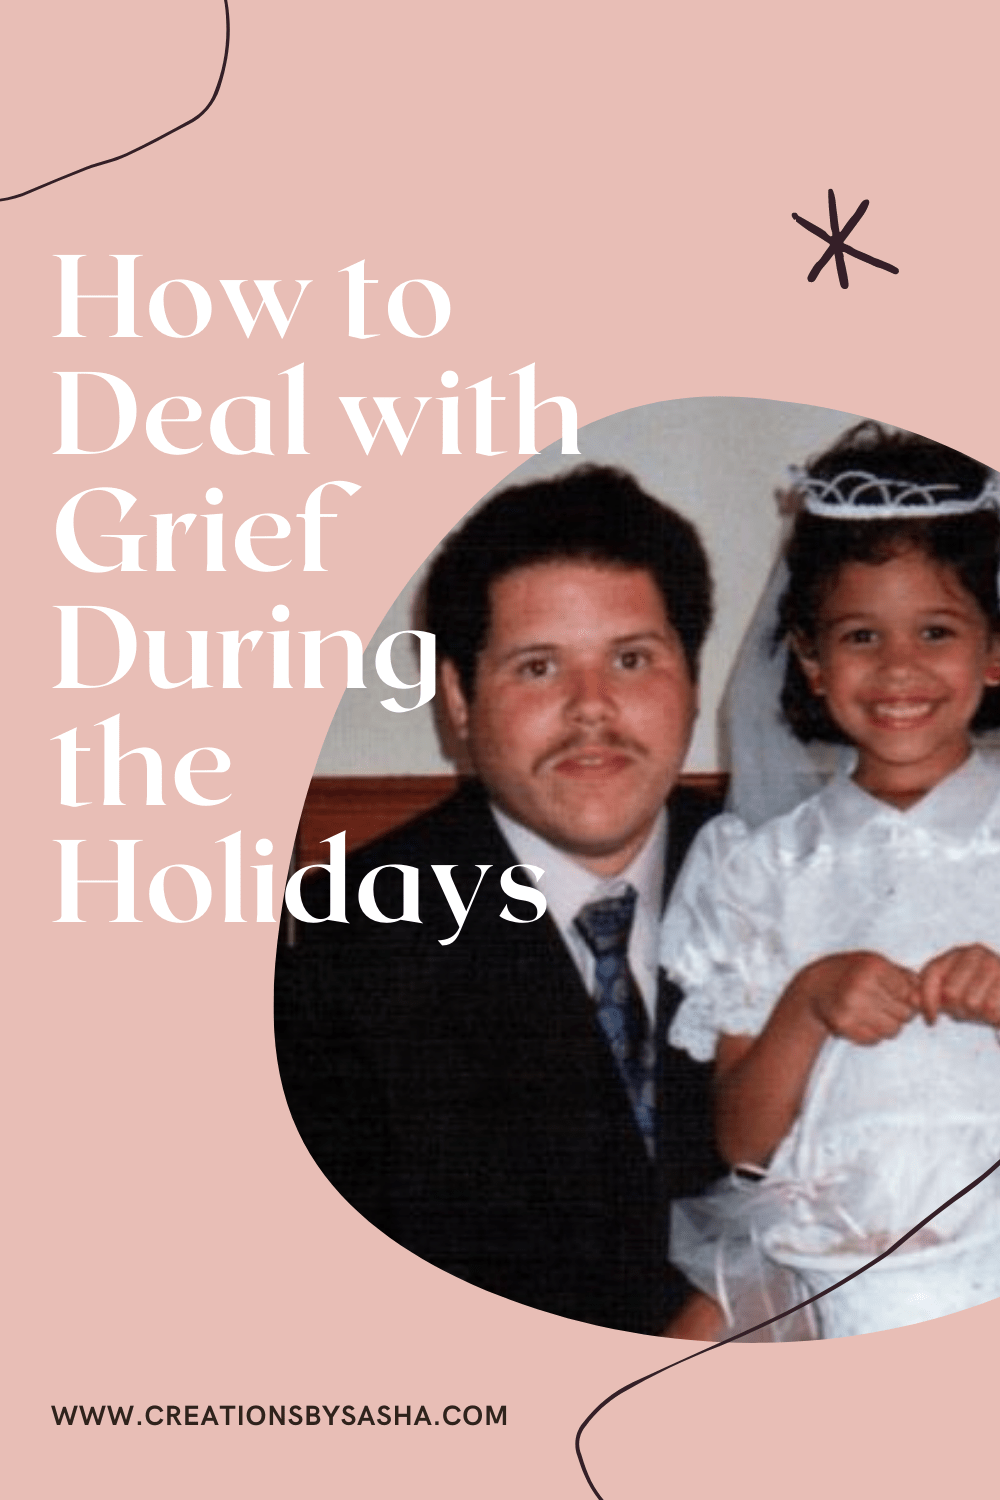 How to Deal with Grief During the Holidays